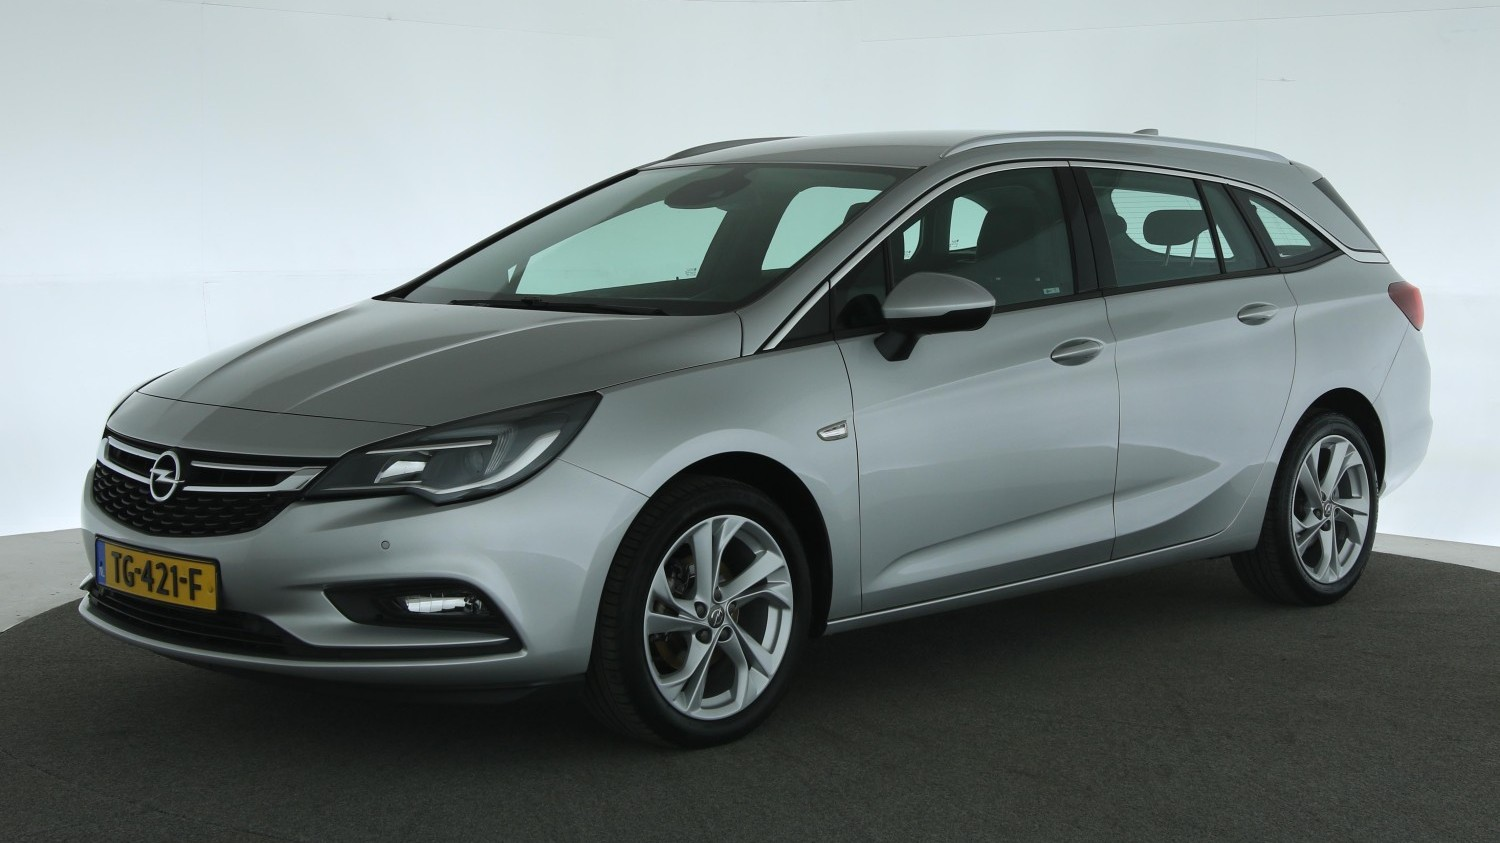 Opel Astra Station 2017 TG-421-F 1